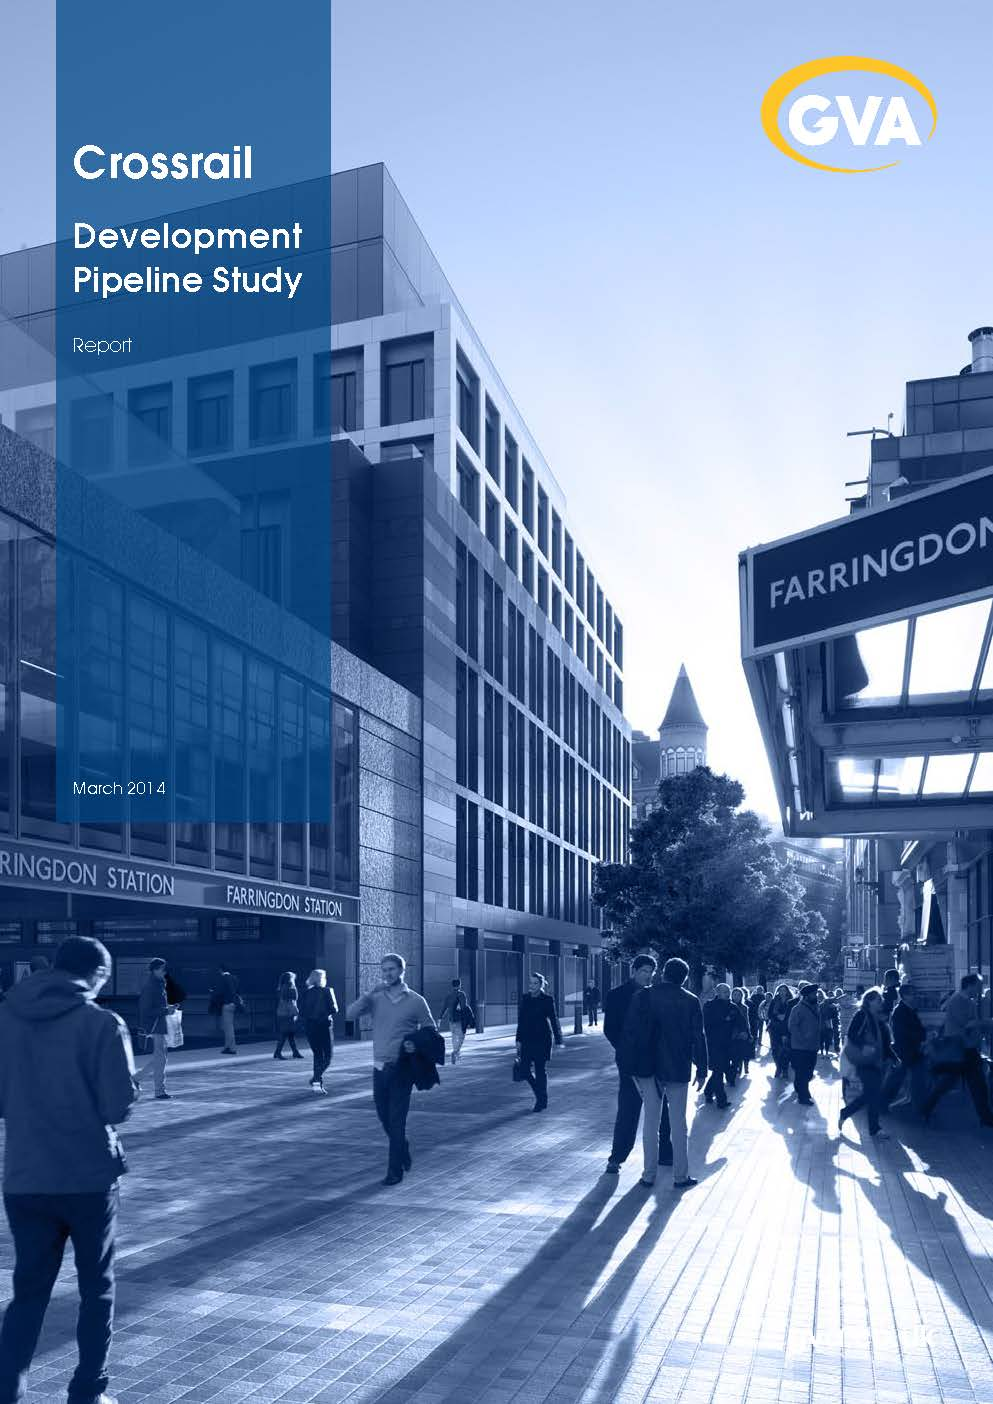 Development Pipeline Study Crossrail Learning Legacy